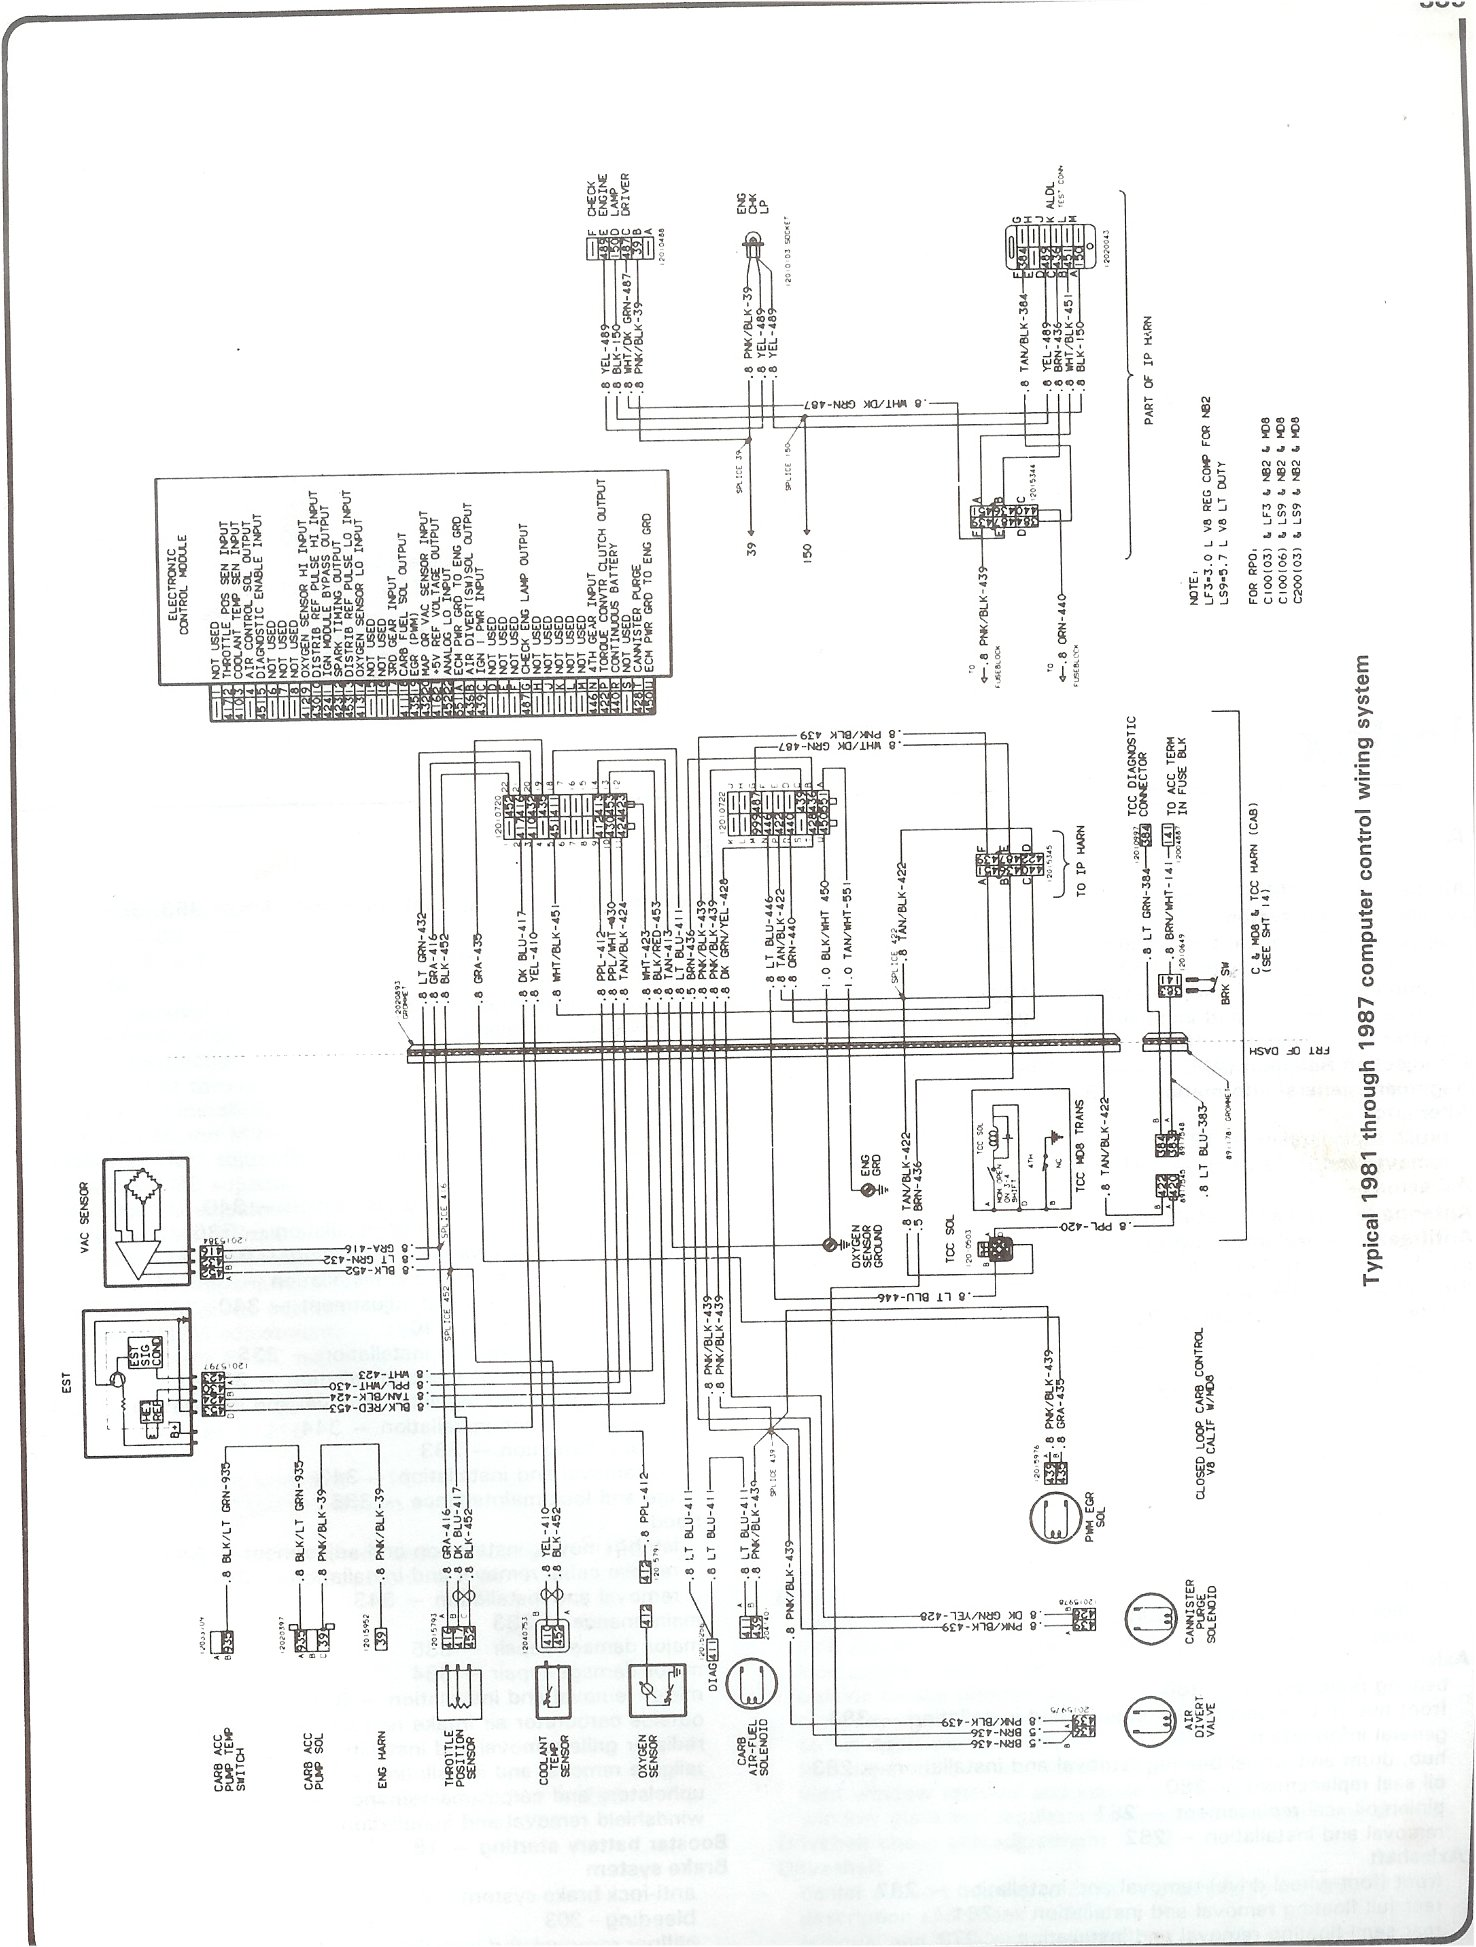 complete 73 87 wiring diagrams rh forum 73 87chevytrucks com 1980 chevy wiring schematic wiring diagram 1980 chevy